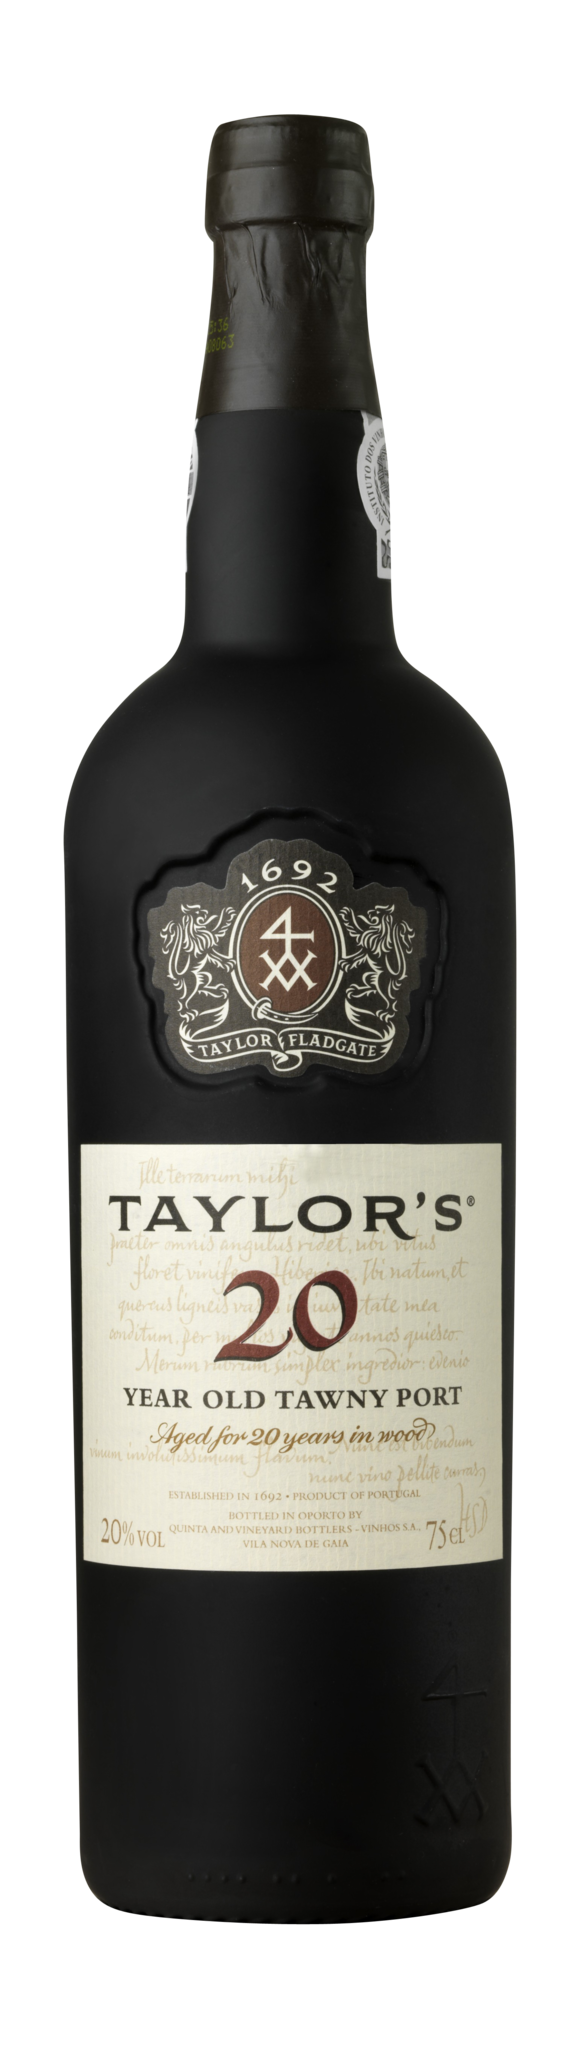 Taylor's 20-Year Old Tawny